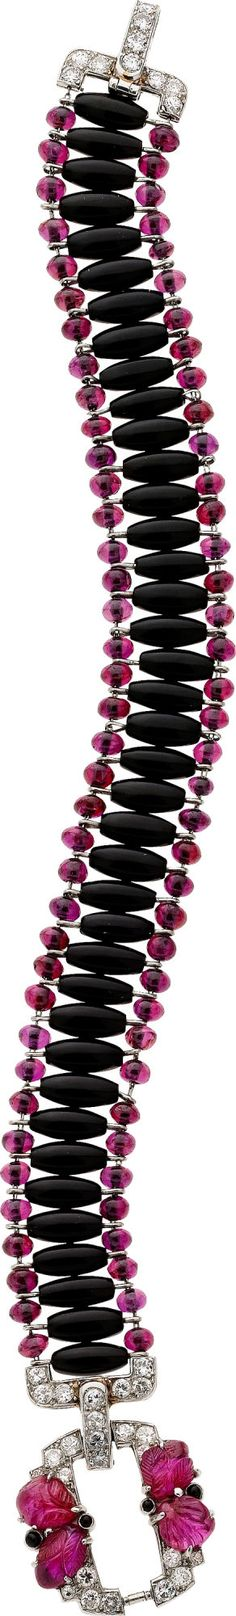 Ruby, Diamond, Black Onyx, Platinum Estate Bracelet.; Seems to move as I scroll the photo on the screen!